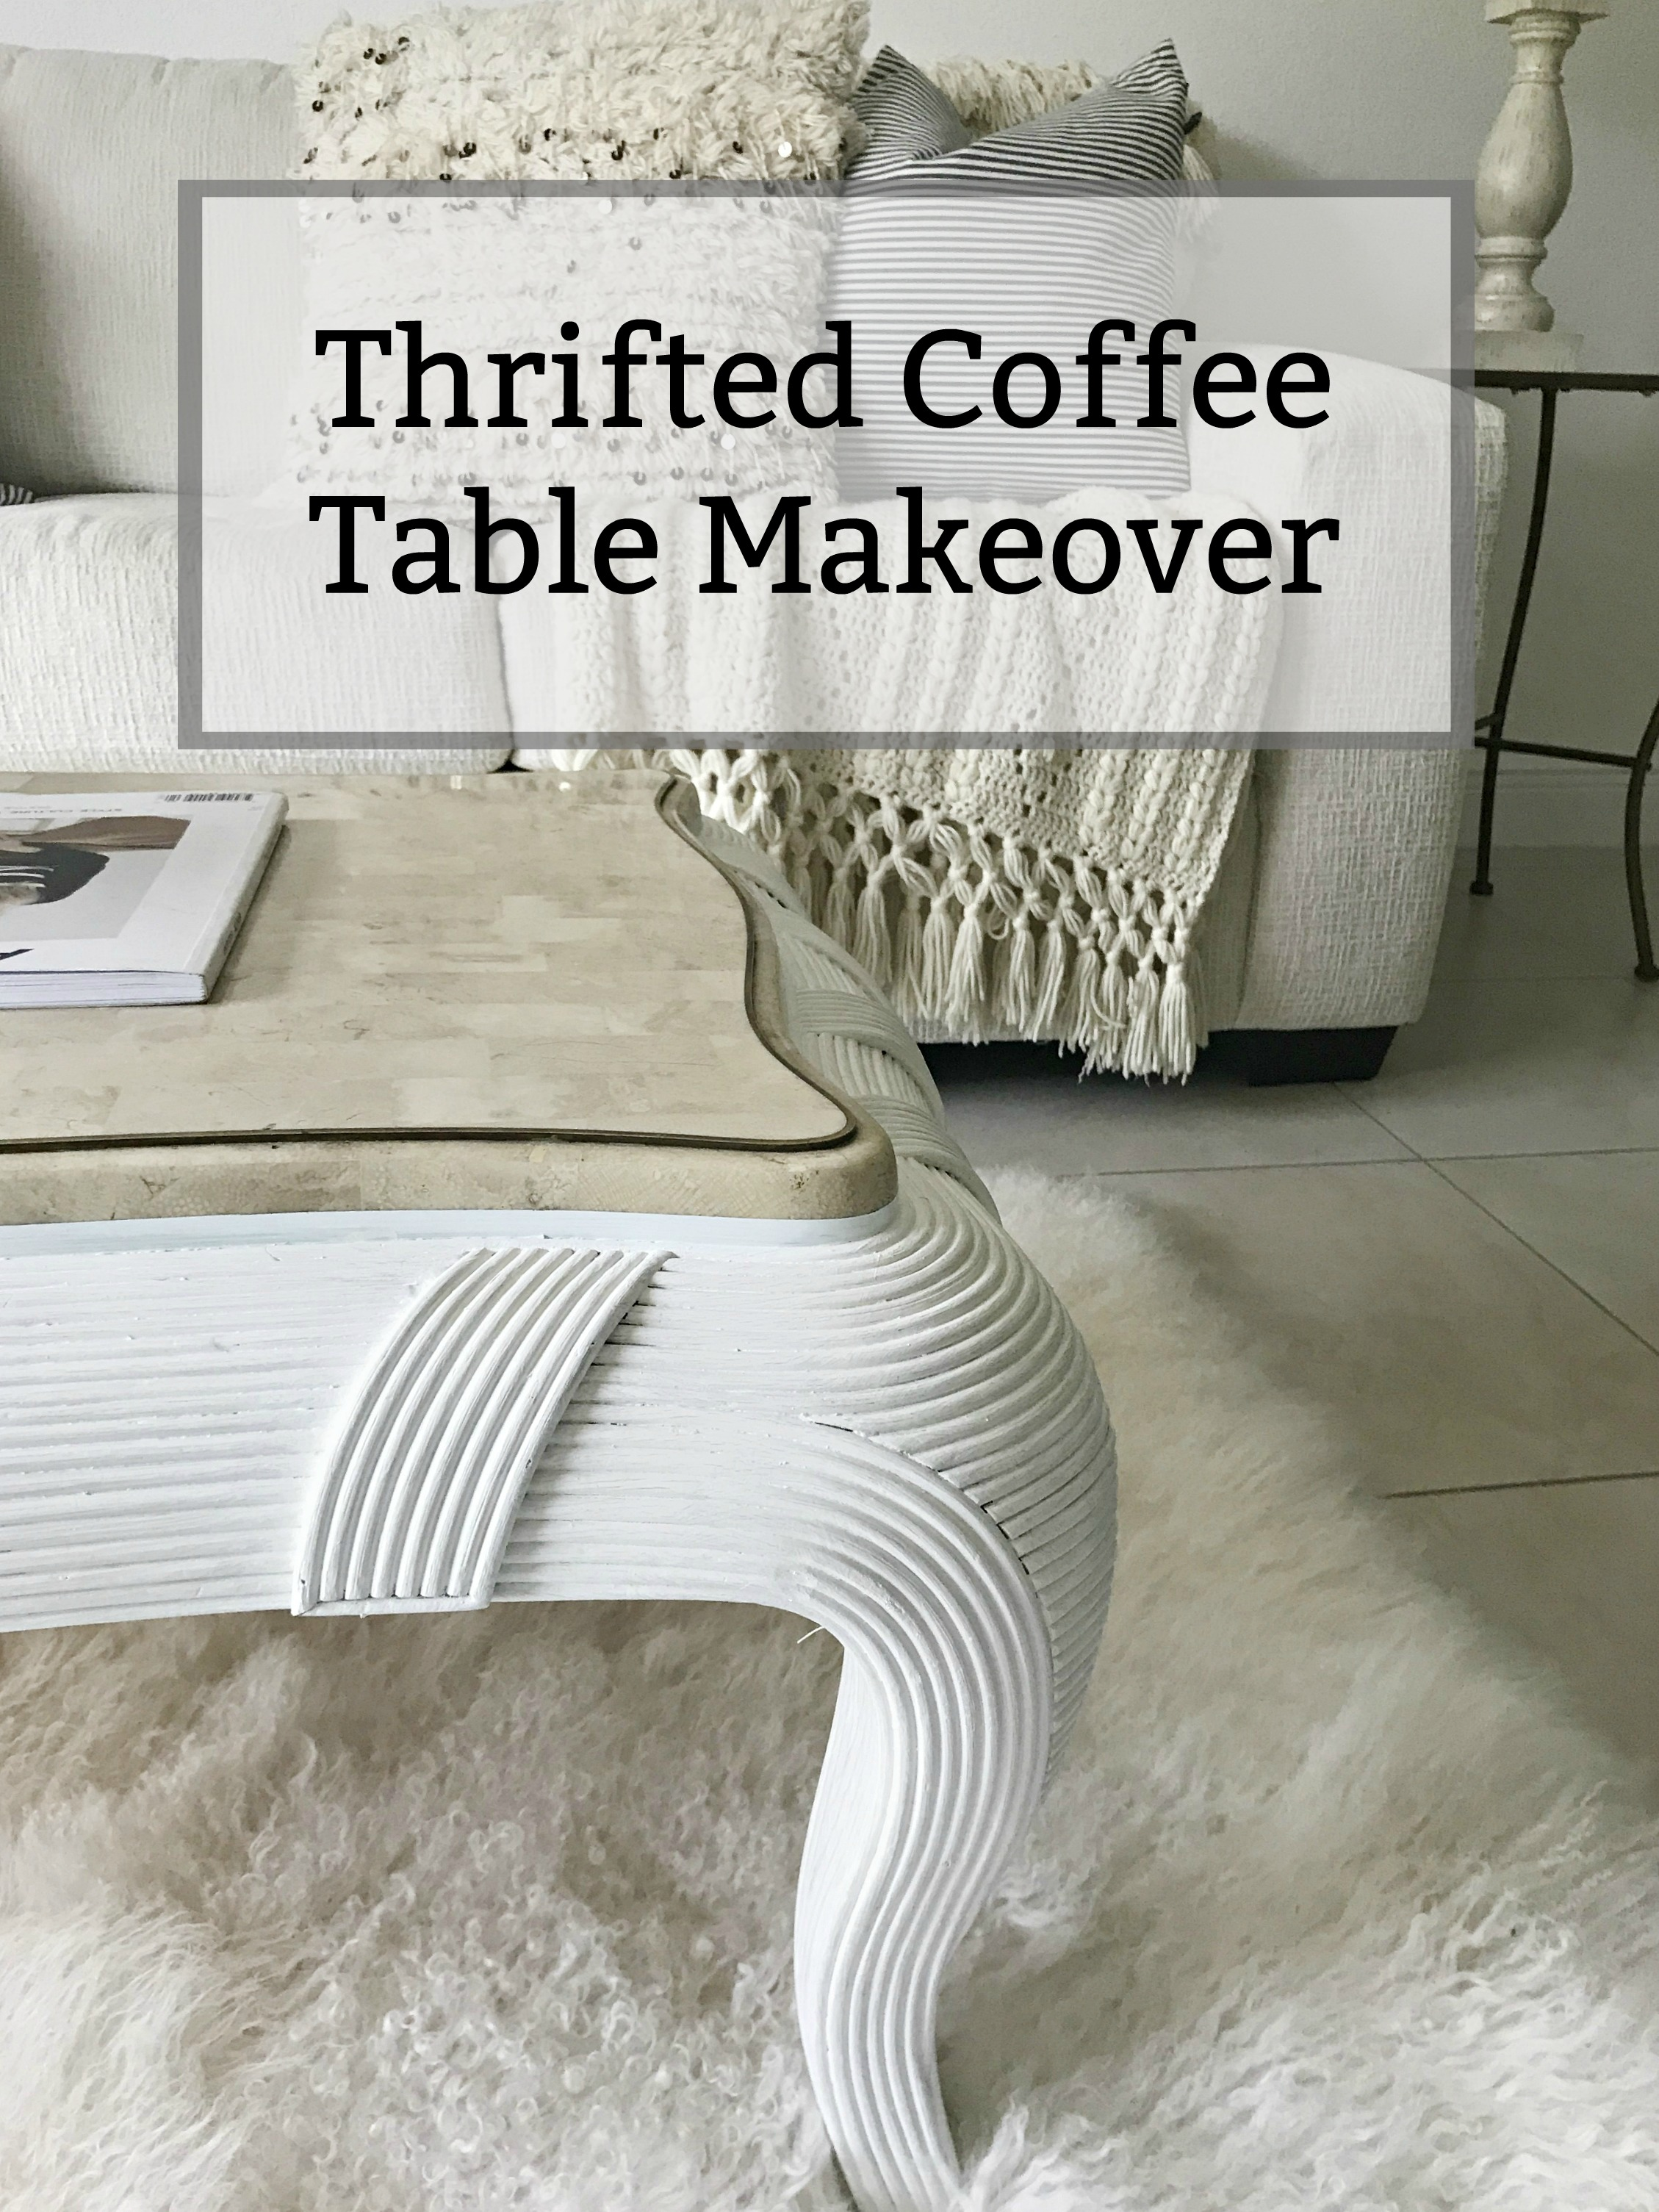 Today I'm sharing this cute thrifted coffee table makeover that I did for my daughter's new Miami apartment, and would you believe I paid $8 for it?